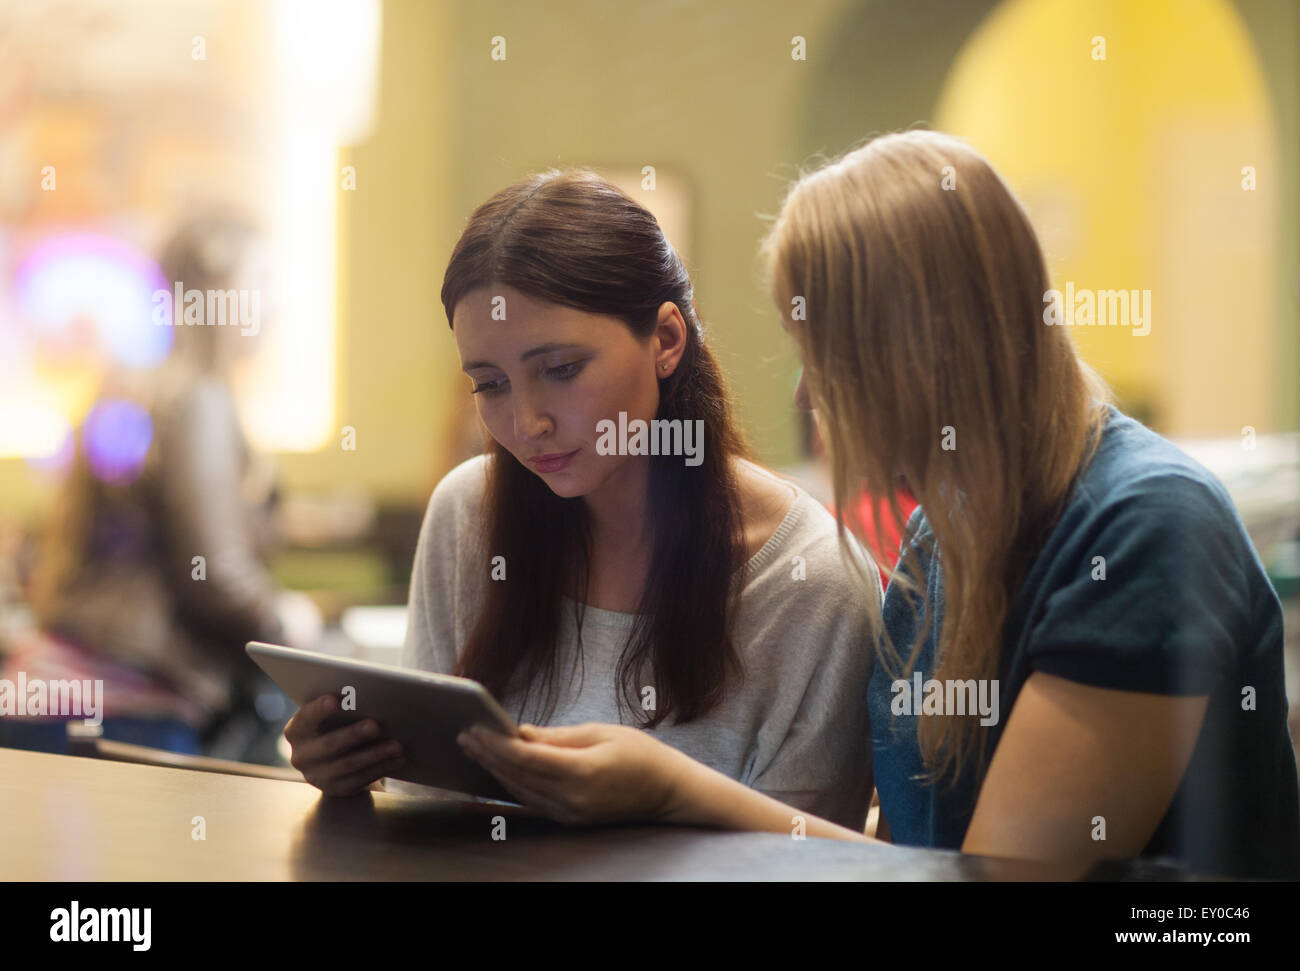 Two women in the restaurant using electronic tablet - Stock Image